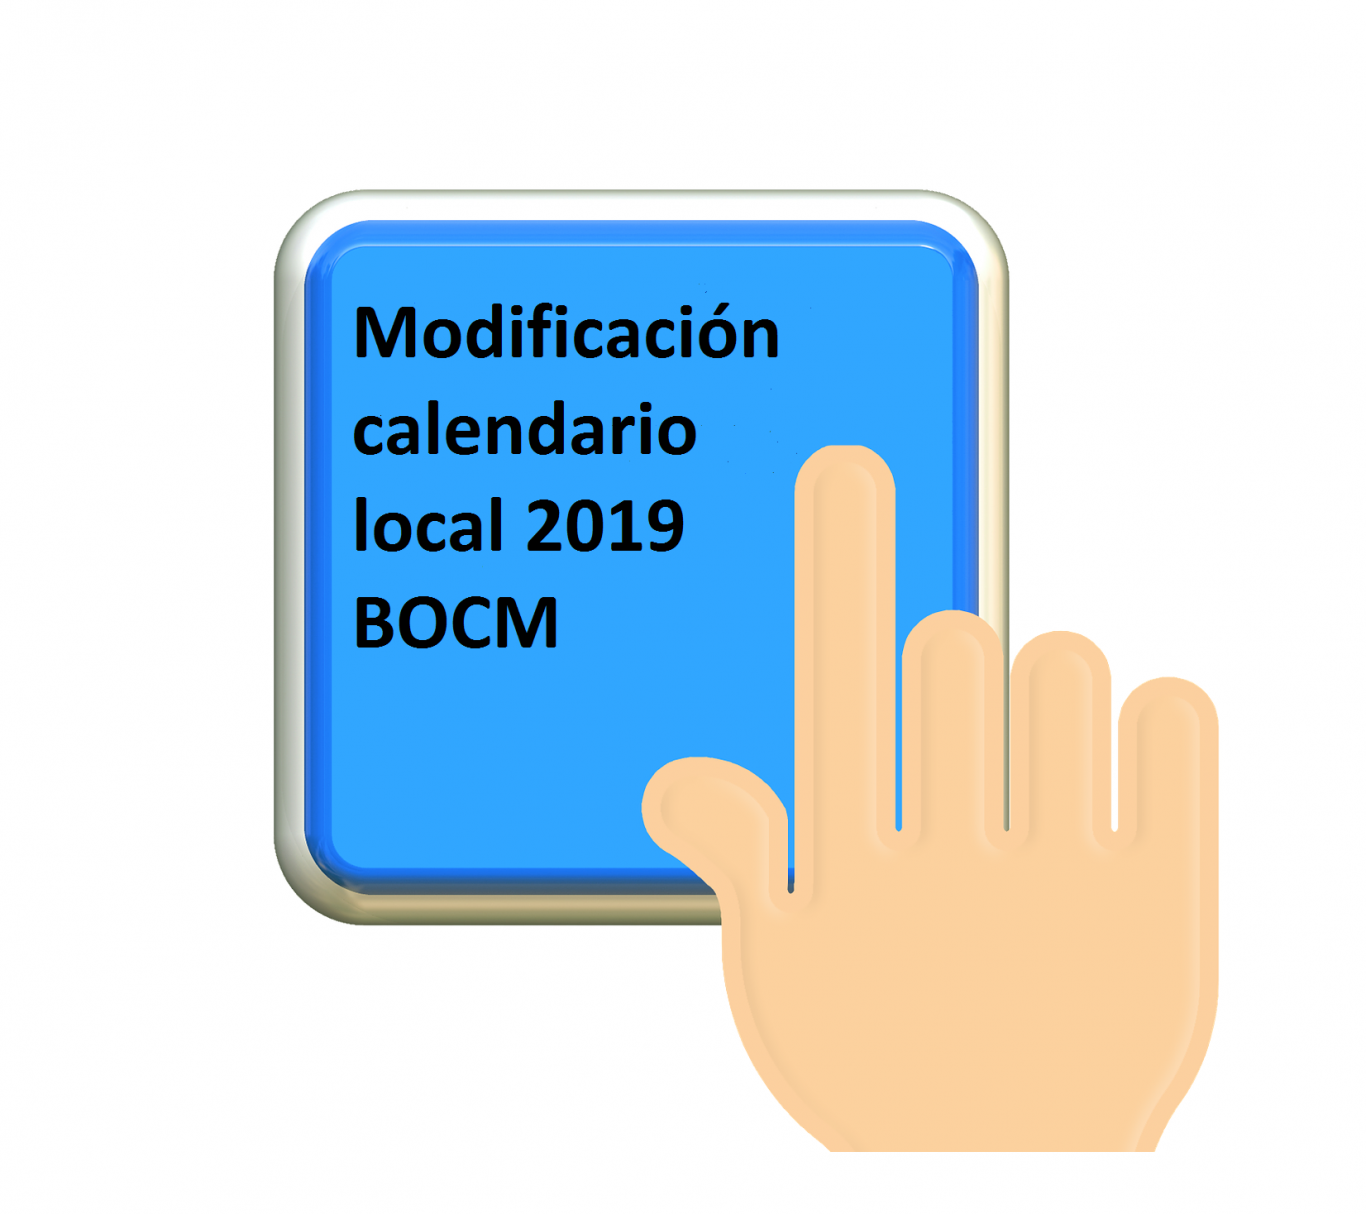 Modificación calendario local 2019